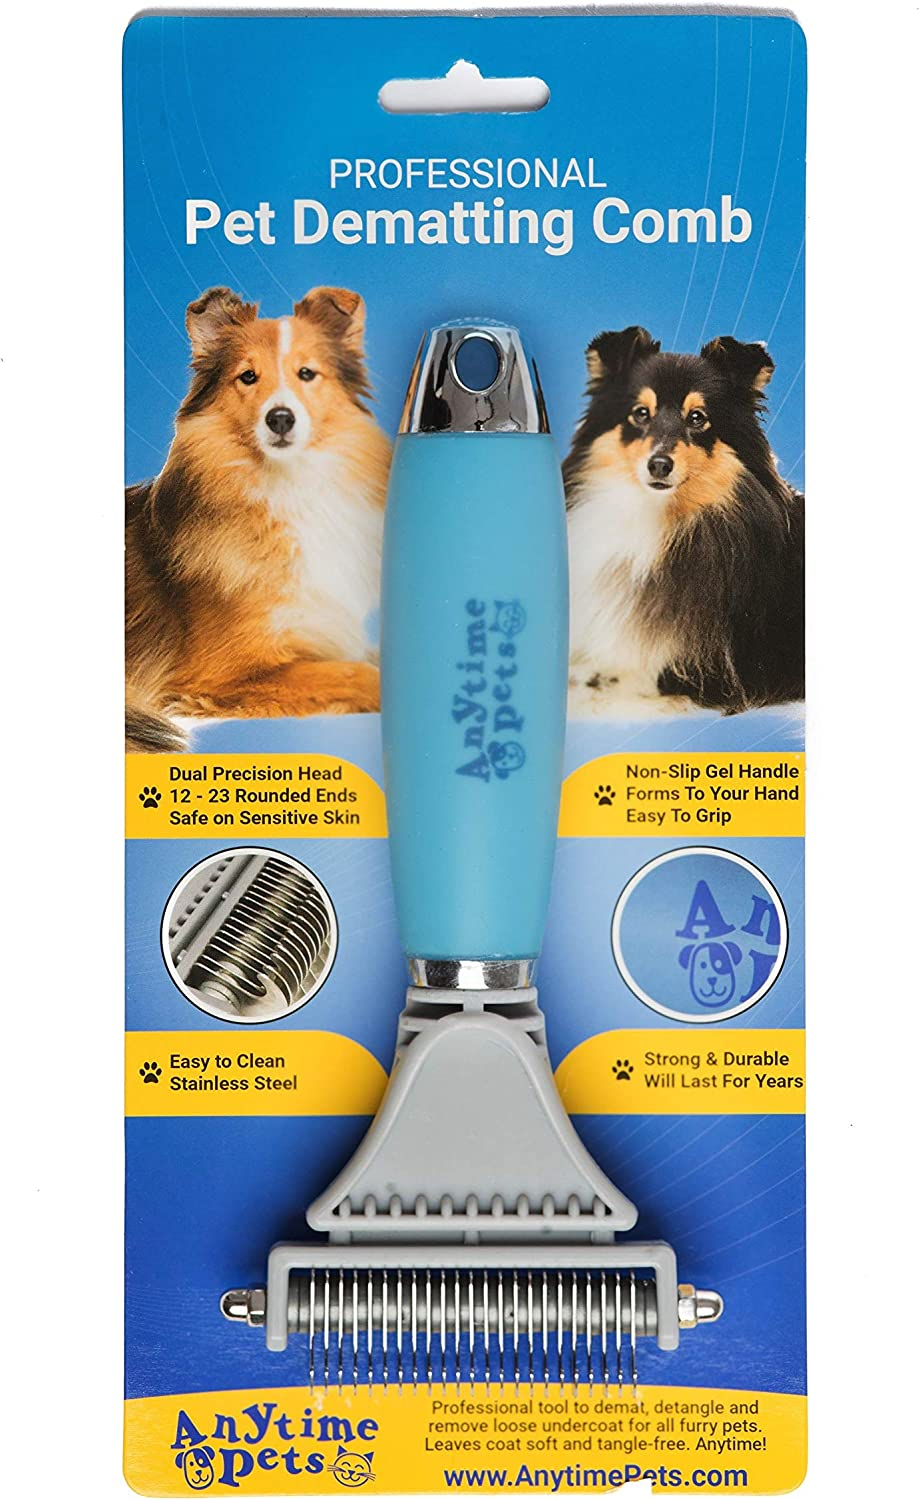 Dematting Rake Comb for Dogs & Cats  Professional Tool for Detangling Matted Hair, Deshedding, and Grooming  Gets Knots Out  by AnytimePets